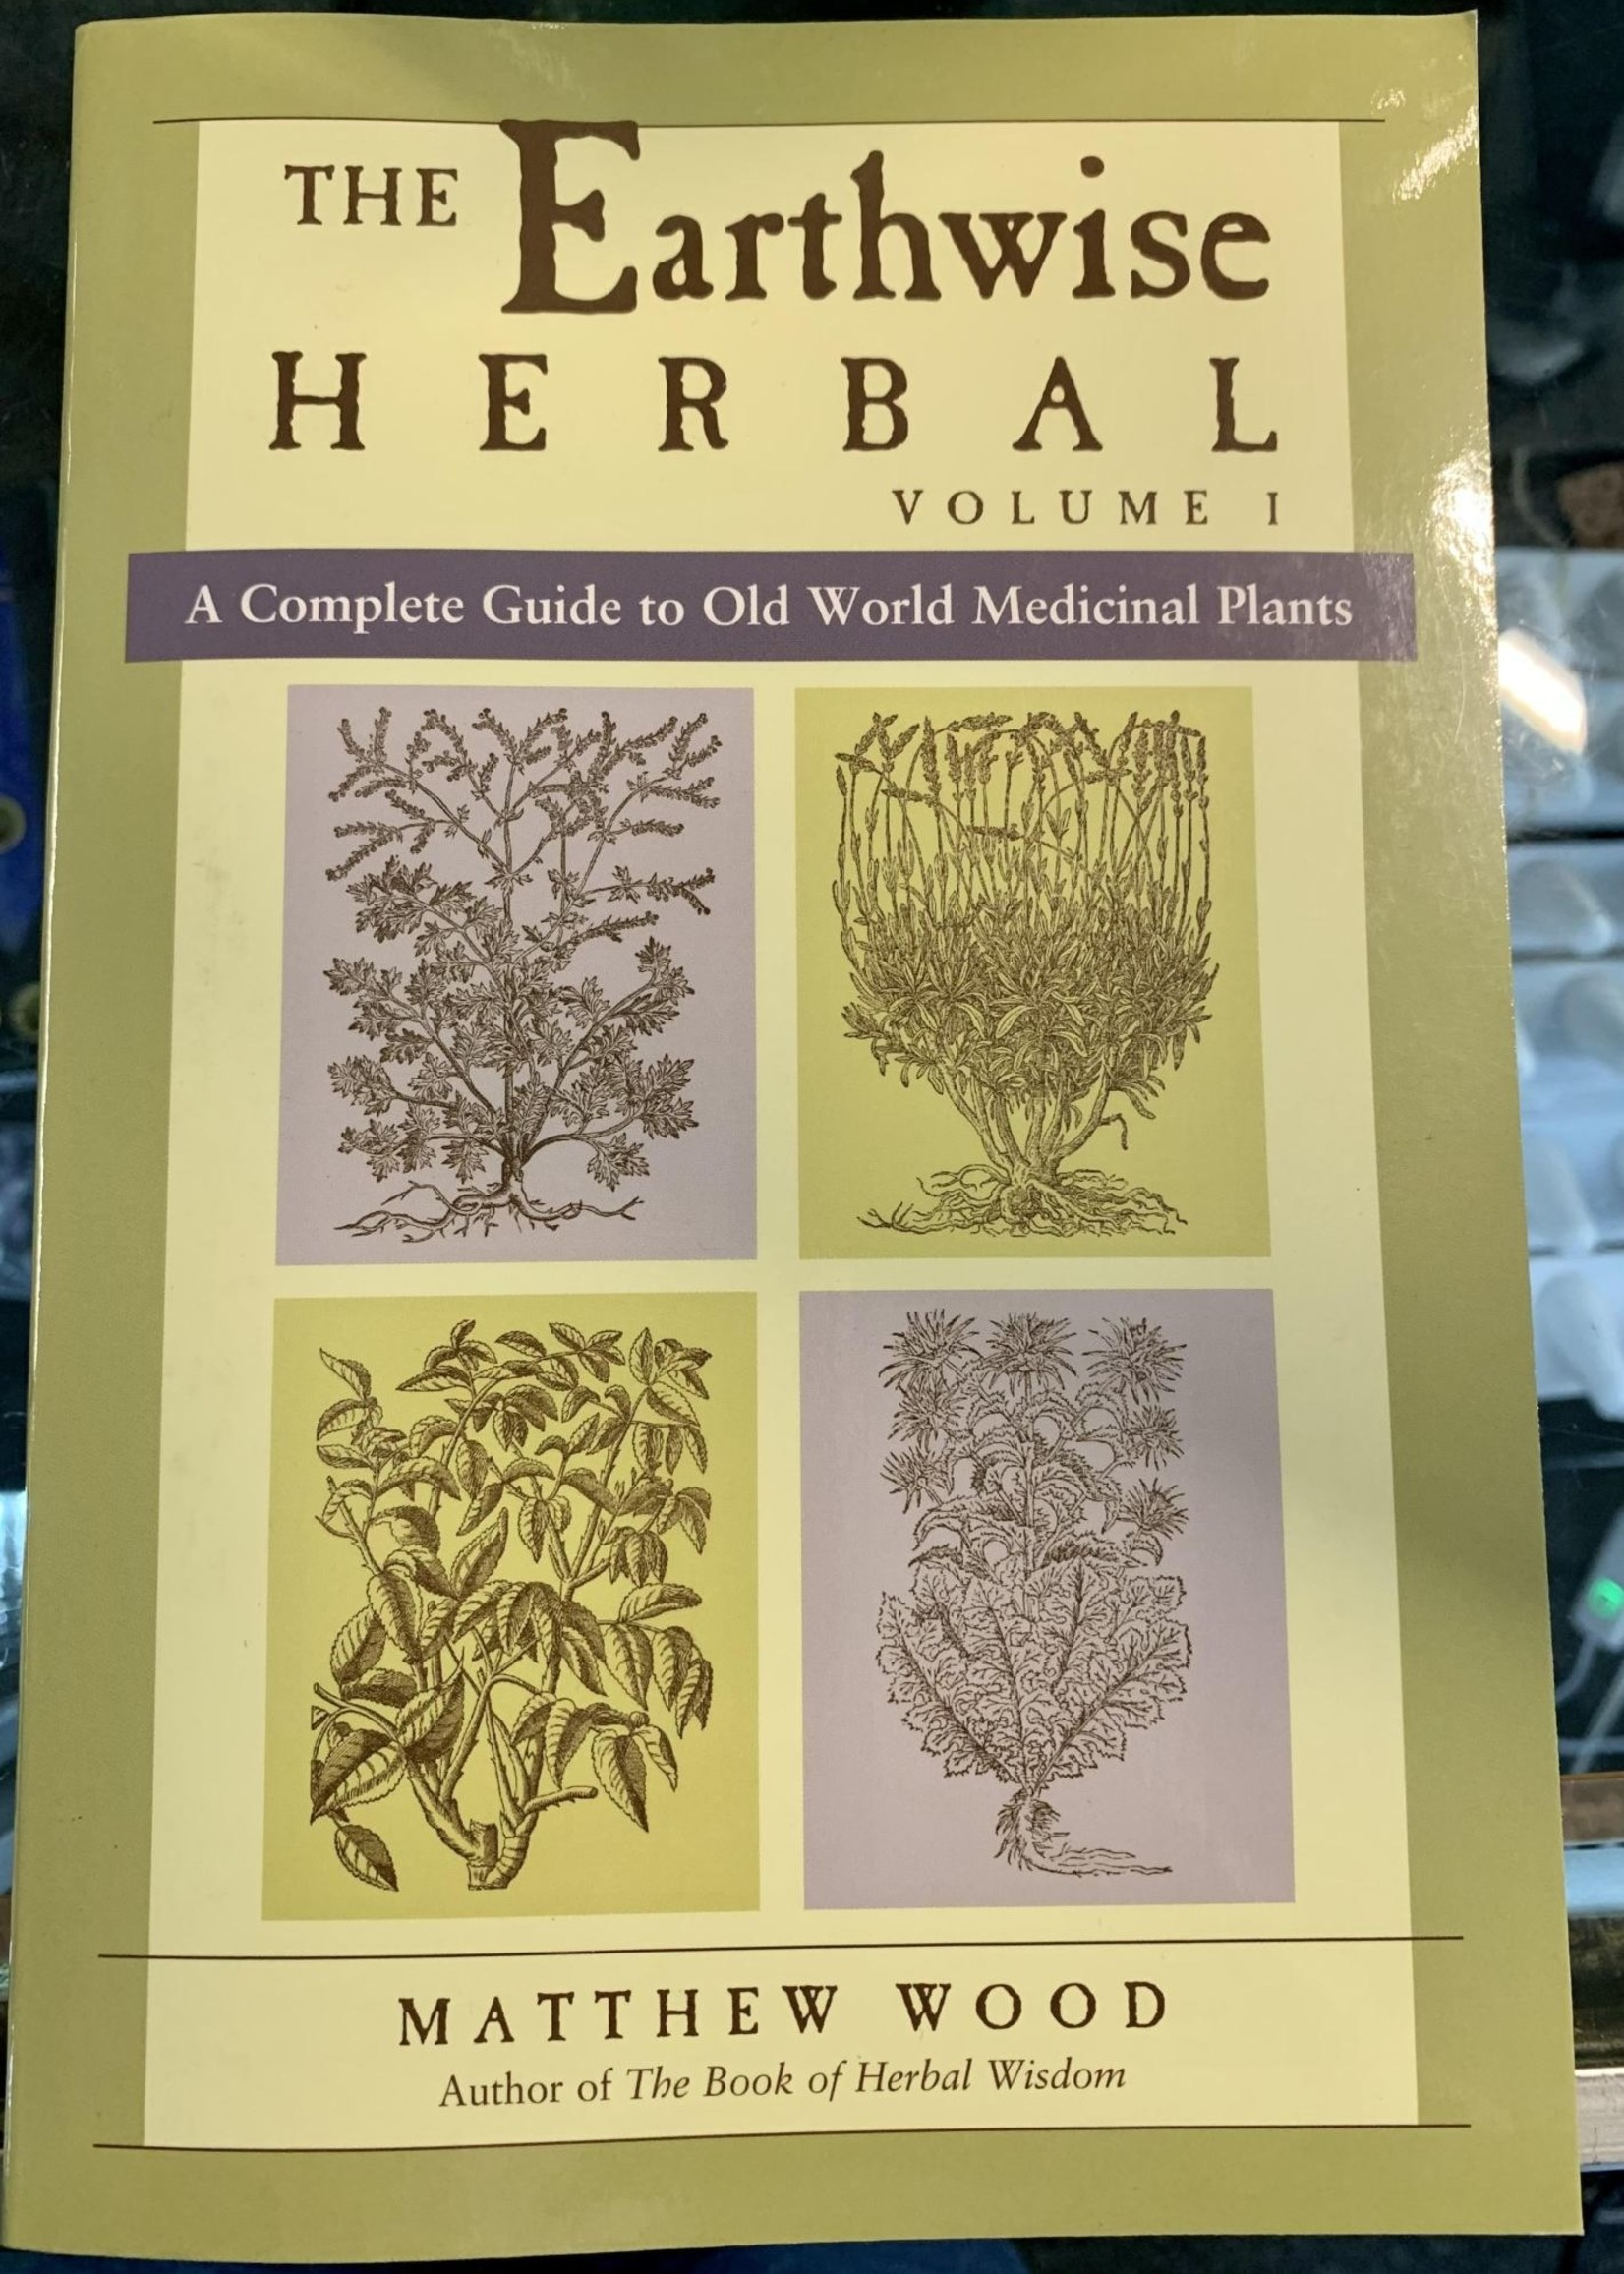 The Earthwise Herbal, Volume I A COMPLETE GUIDE TO OLD WORLD MEDICINAL PLANTS - By MATTHEW WOOD